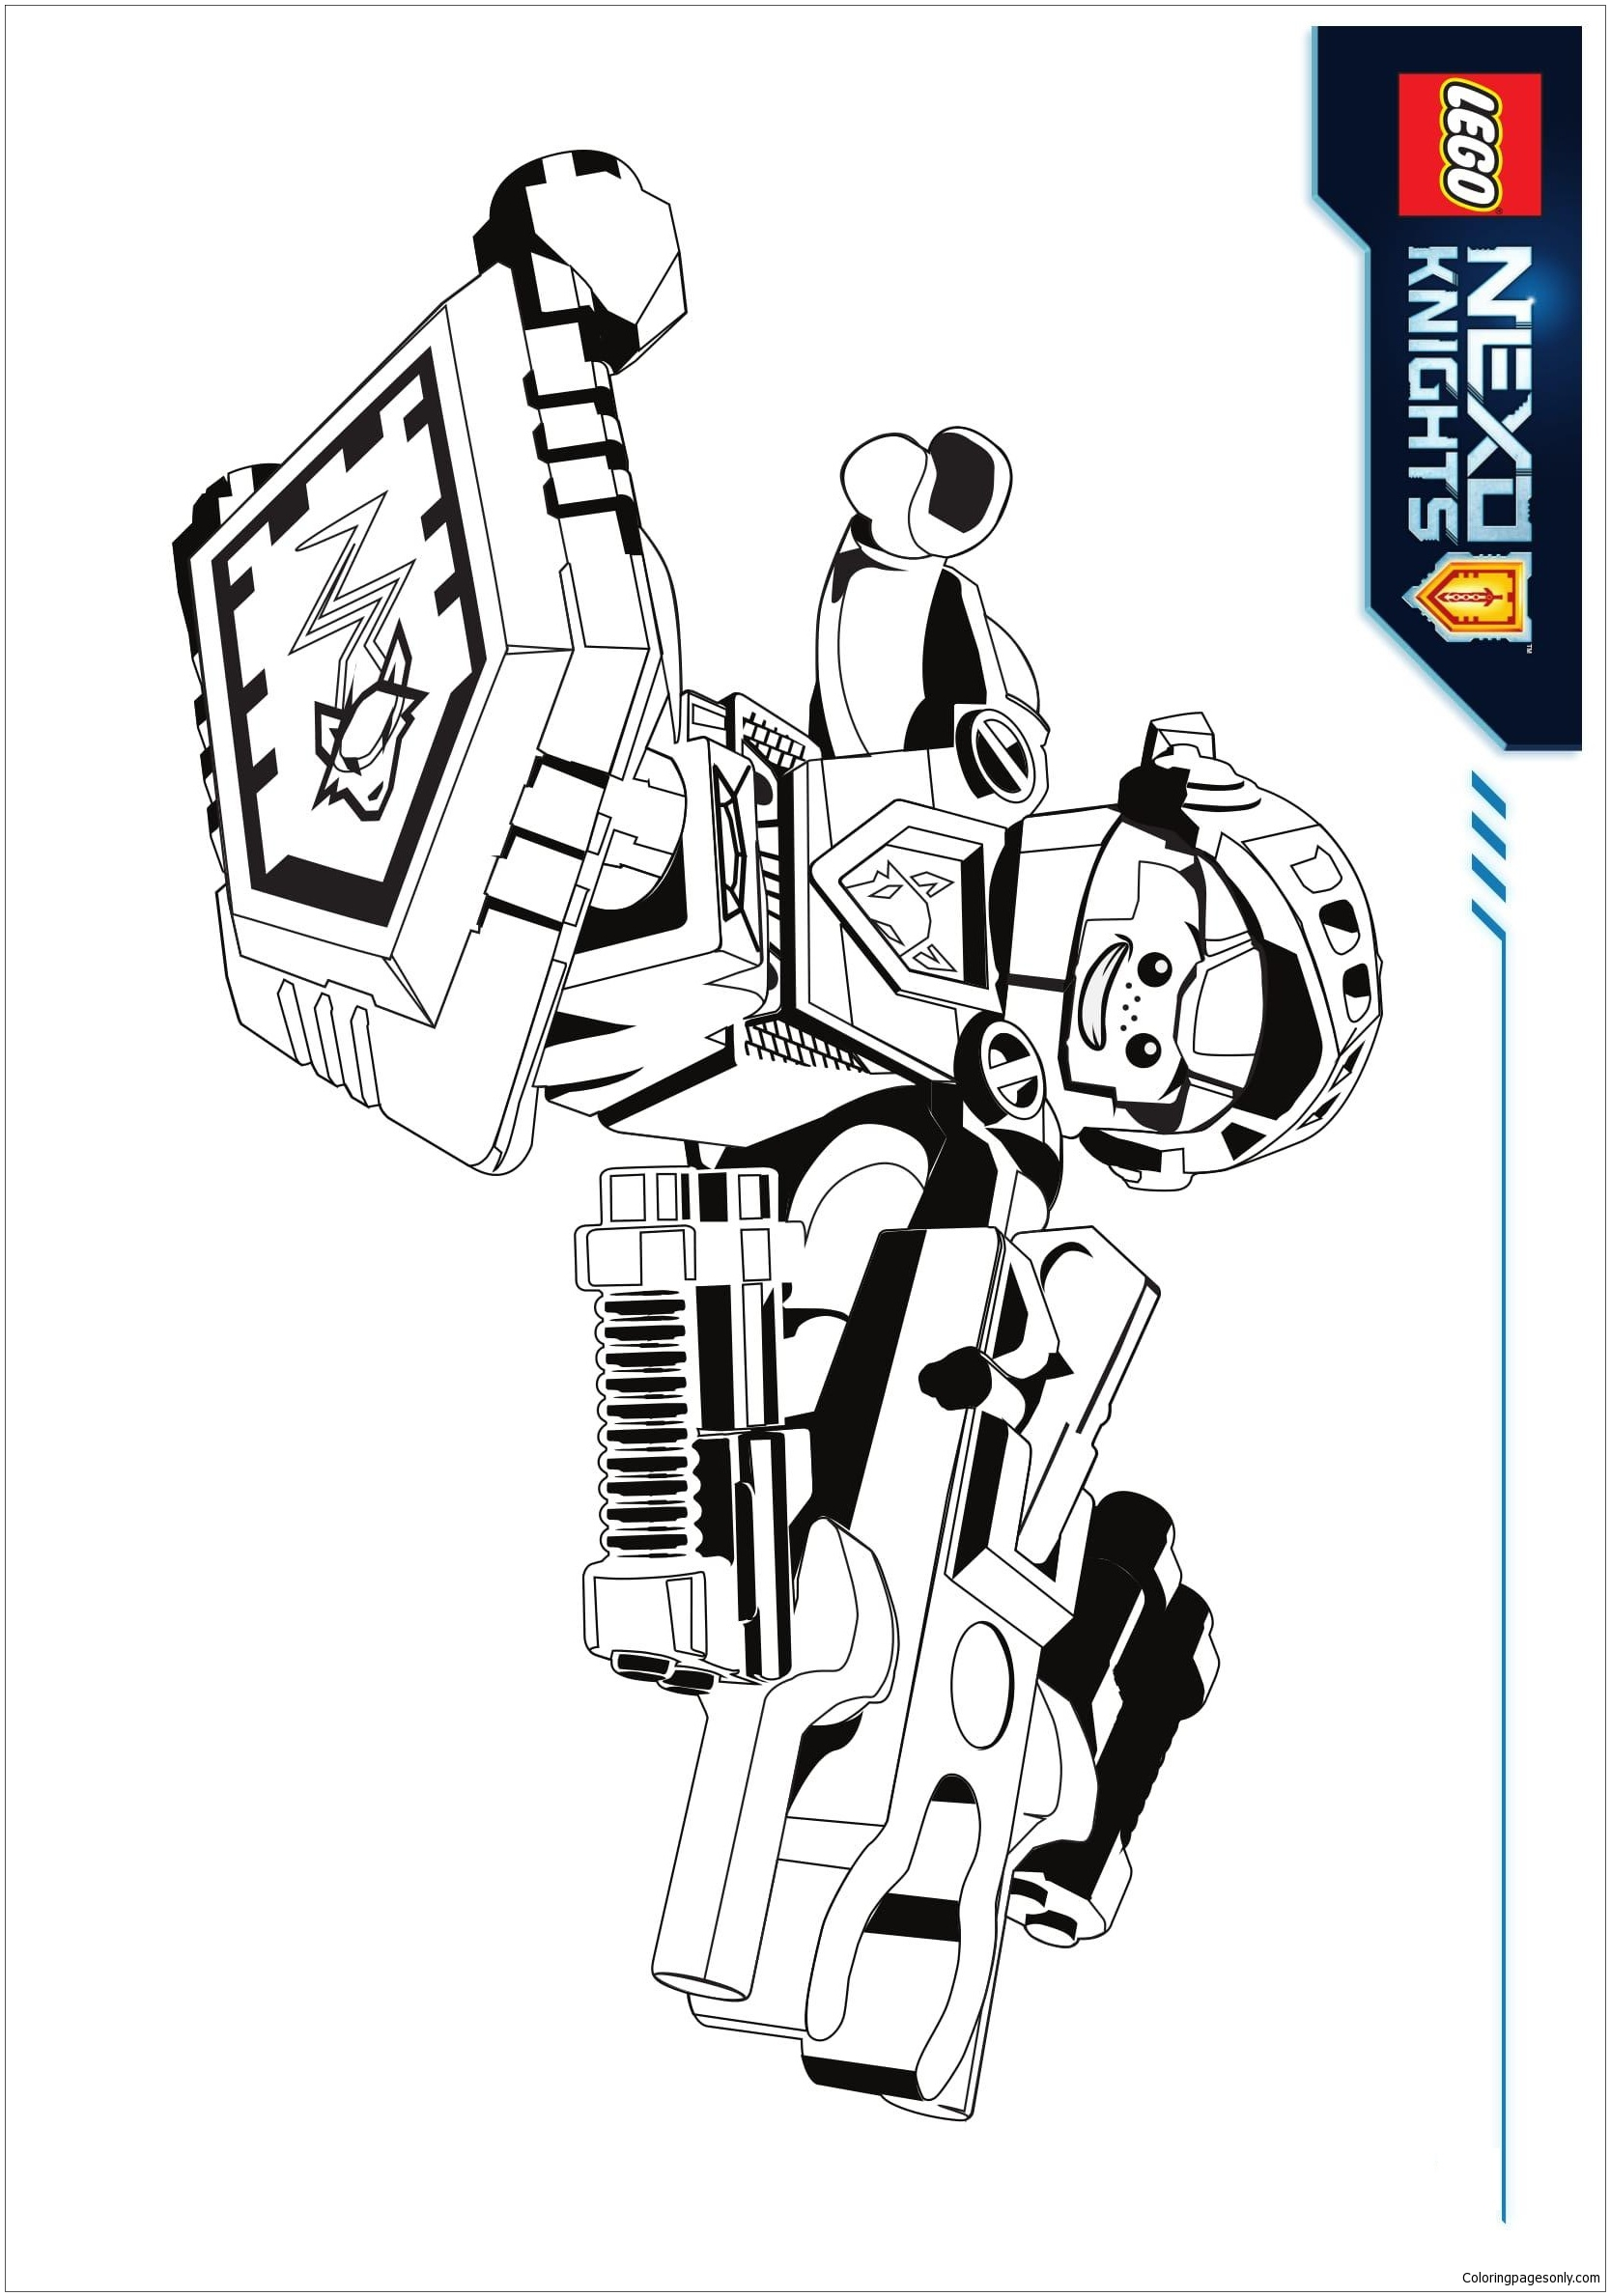 - Lego Nexo Knights Aaron Coloring Page - Free Coloring Pages Online